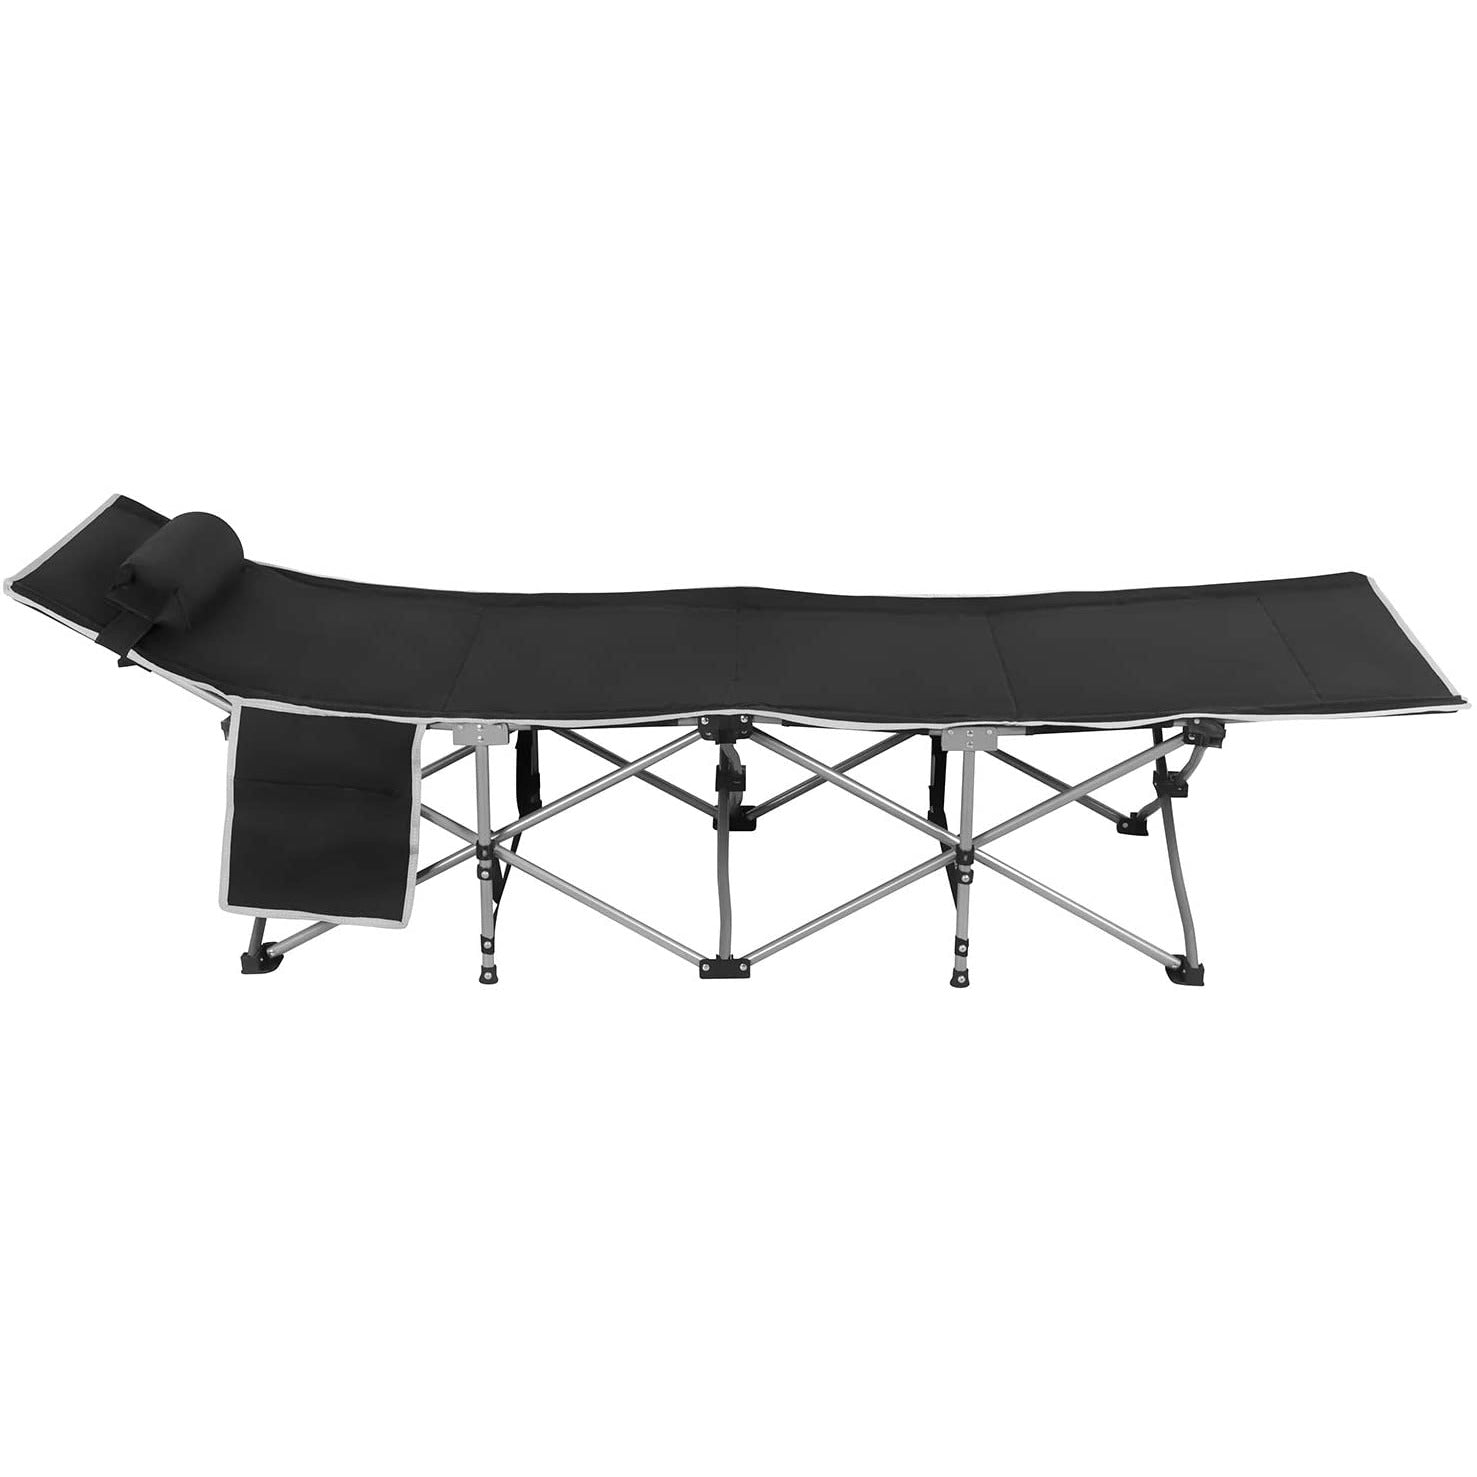 Dark Slate Gray Folding Sleeping Camping Cot 450 lbs Max, Bed w/Pillow and Side Pocket Portable Design Comfort Small Collapsing Sleeping Bed- Outdoor Traveling Picnic for Adults